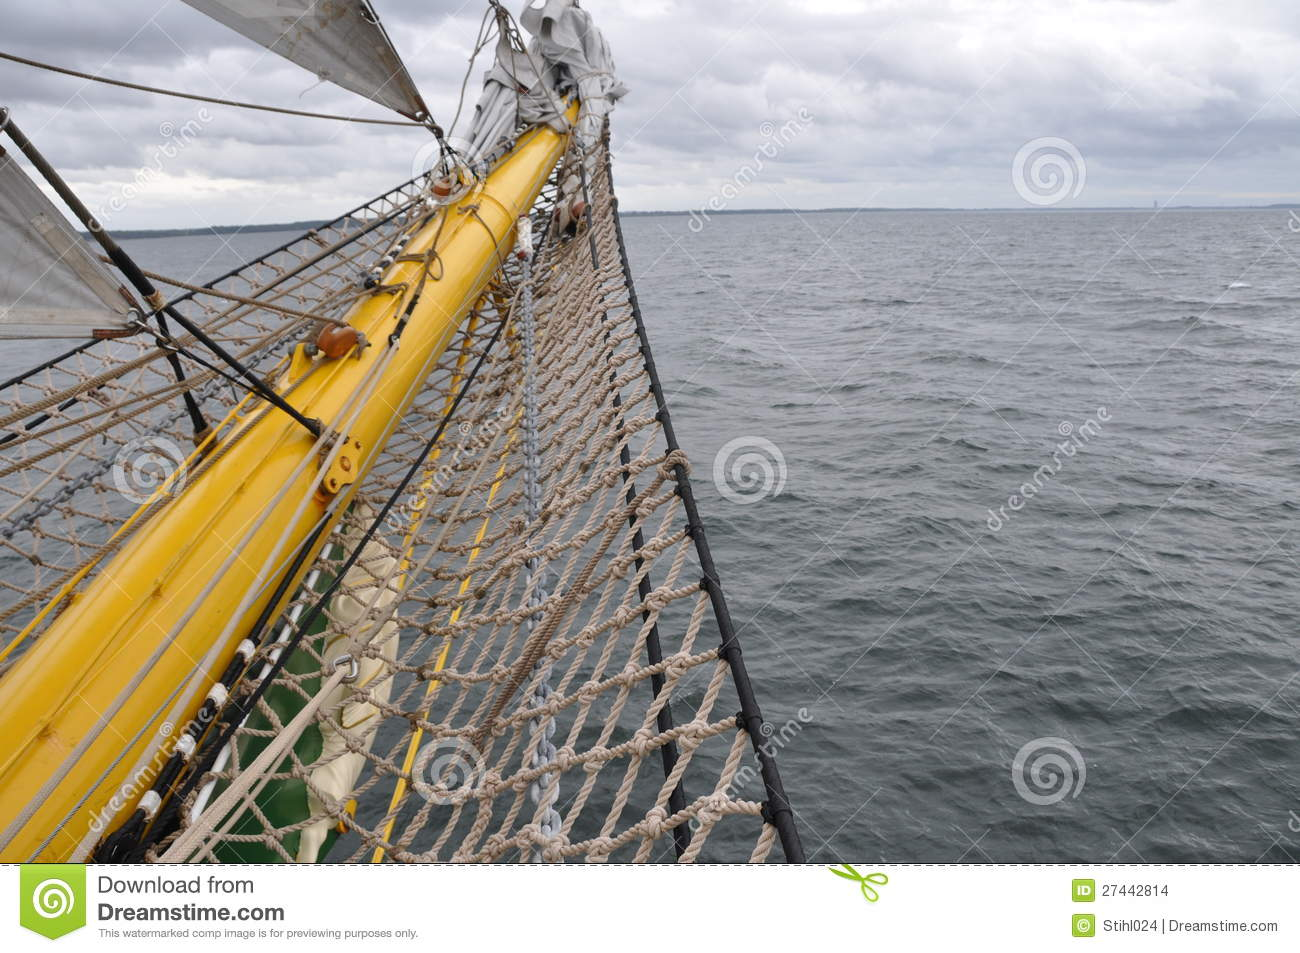 Bowsprit of sail boat